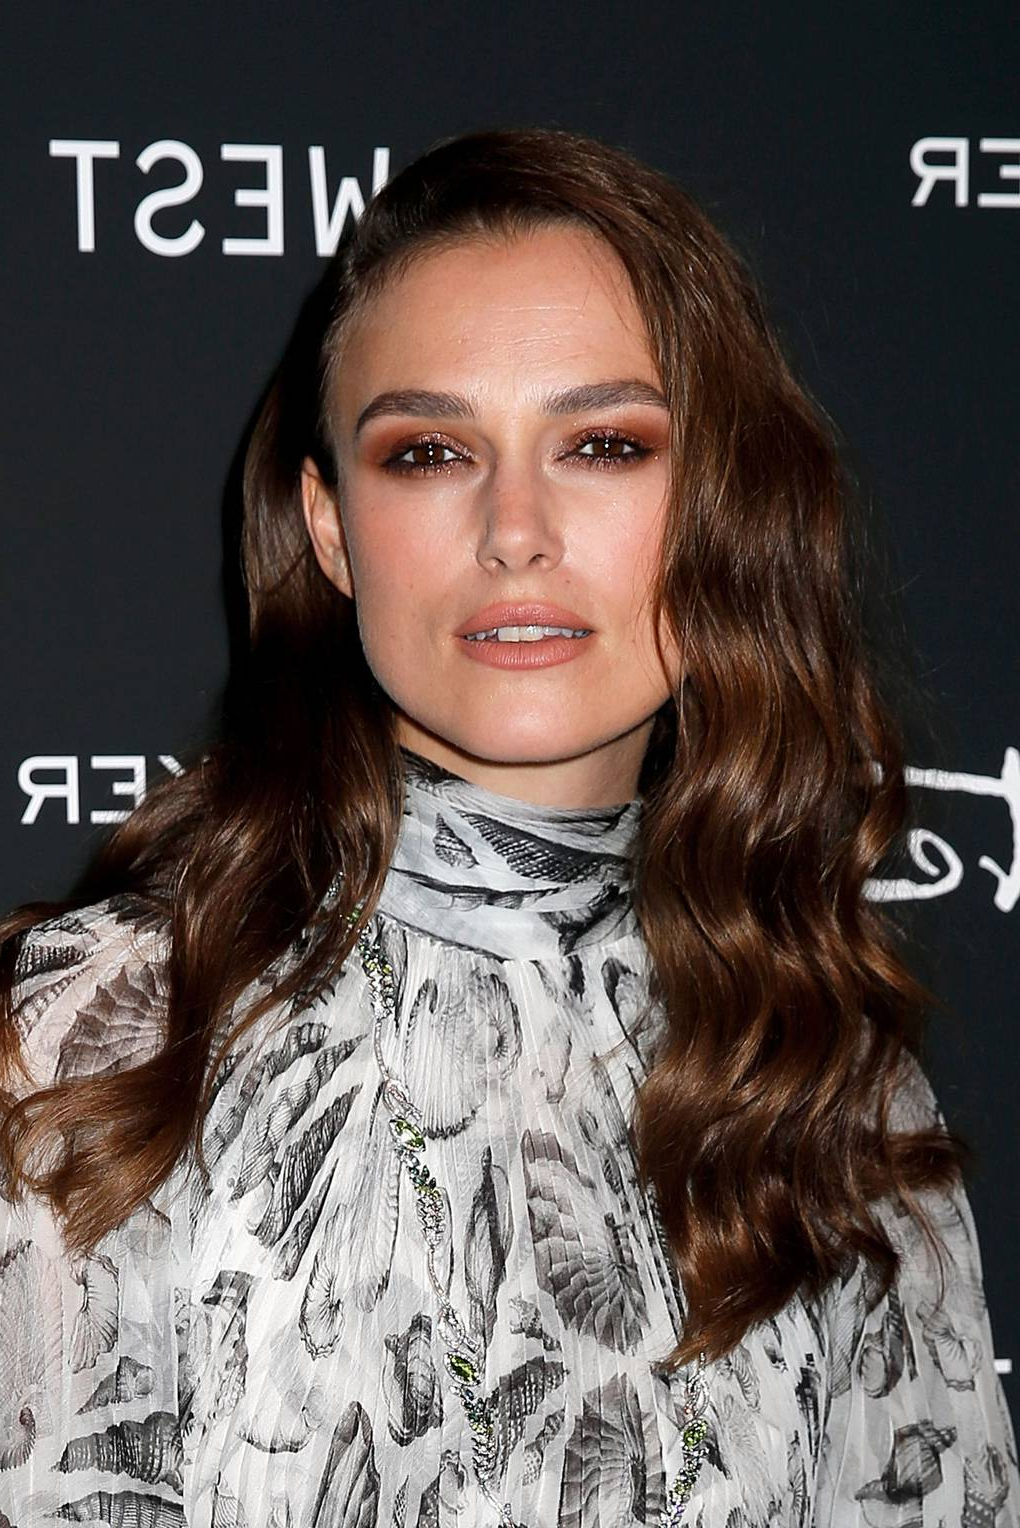 Keira Knightley Hair And Hairstyles On Red Carpet | British Vogue Regarding Keira Knightley Short Hairstyles (View 12 of 25)